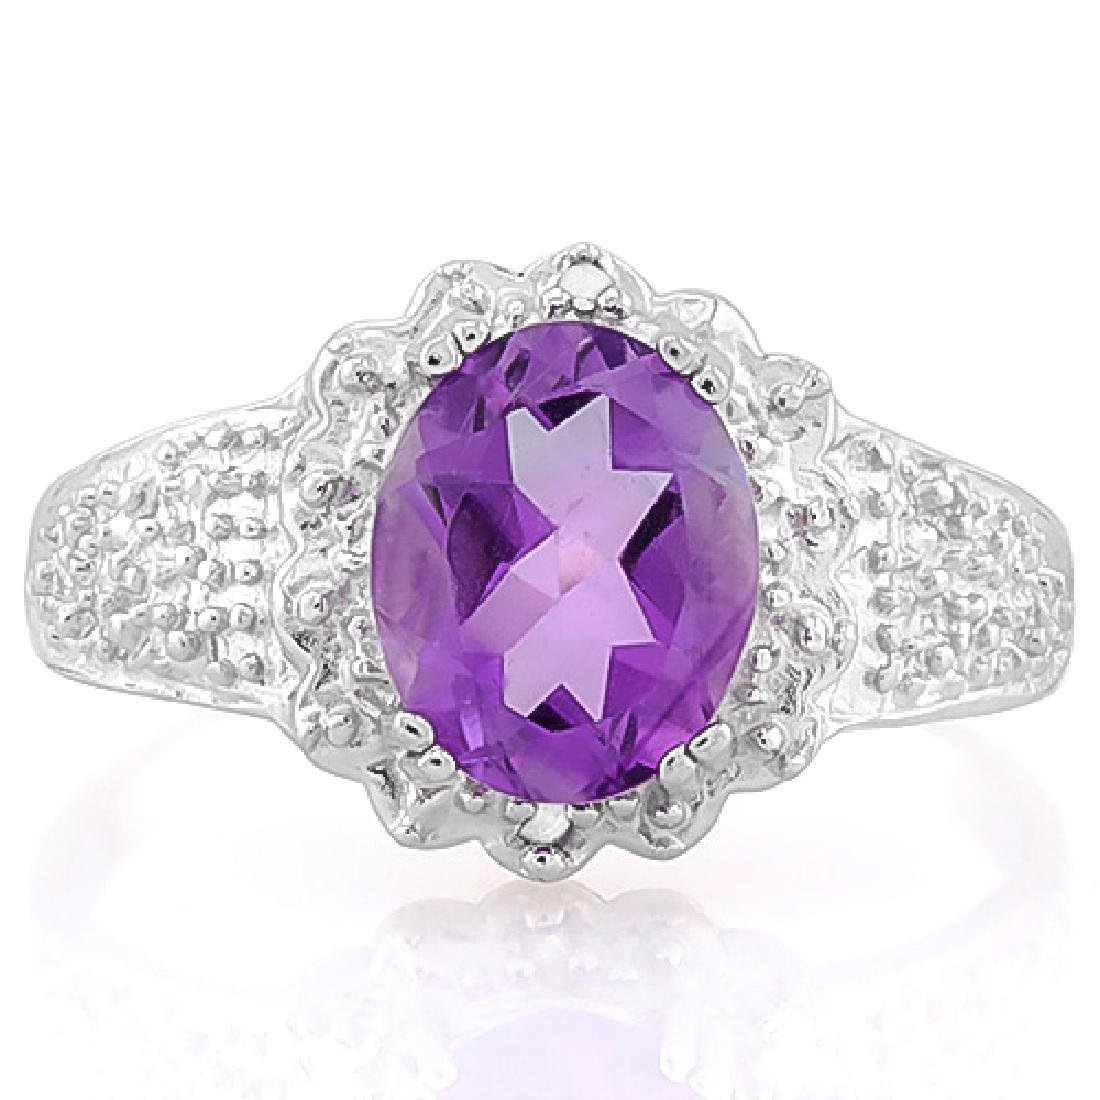 1 2/3 CARAT AMETHYST & DIAMOND 925 STERLING SILVER RING